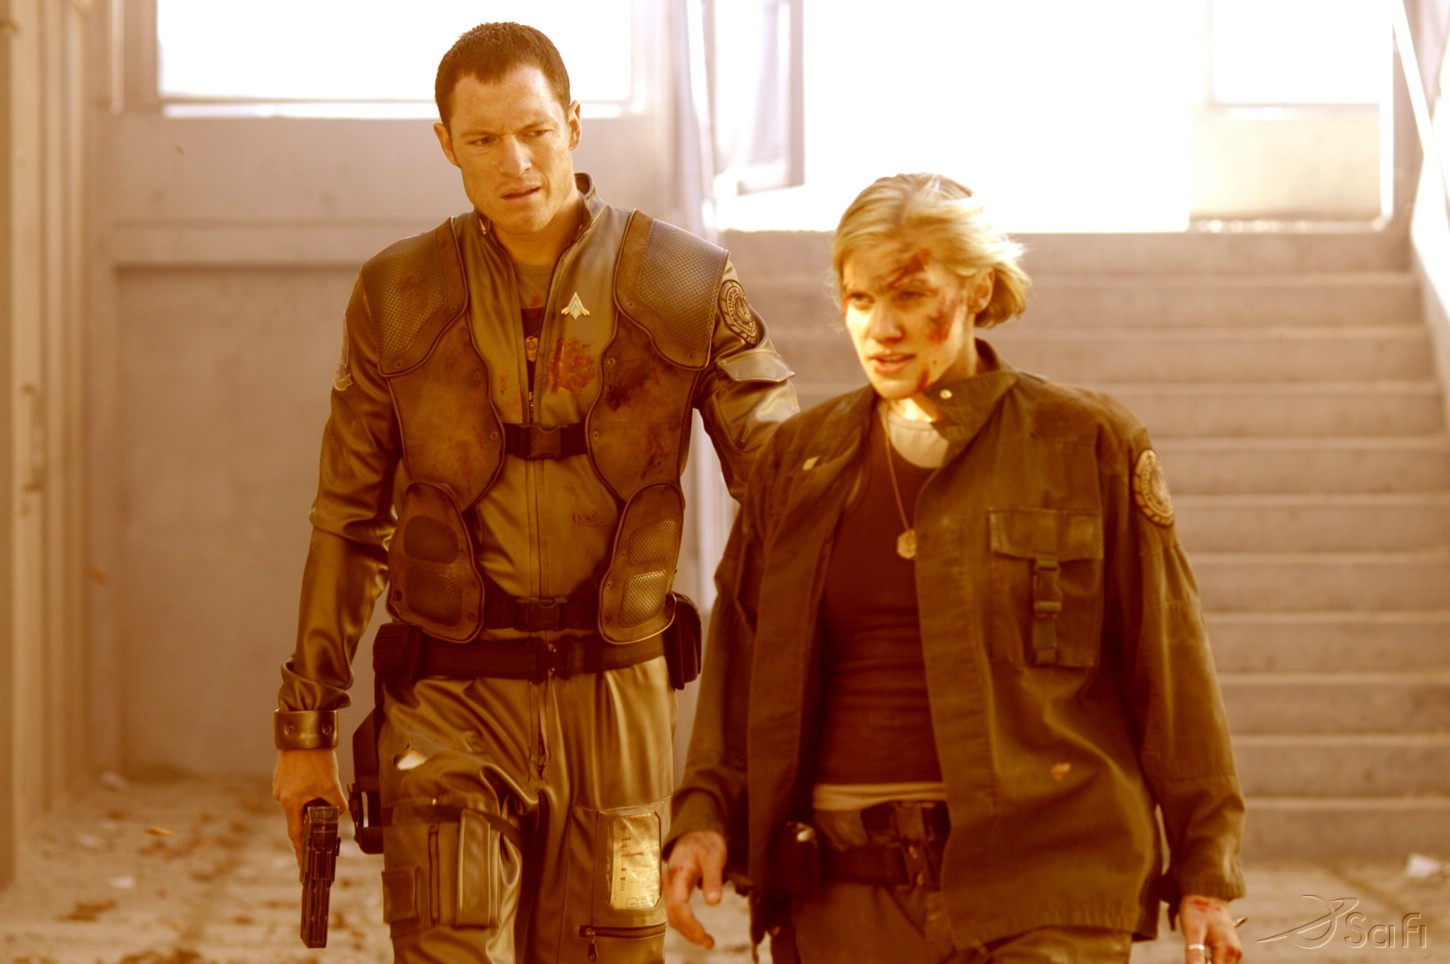 Tahmoh Penikett and Katee Sackhoff in Battlestar Galactica (2004)